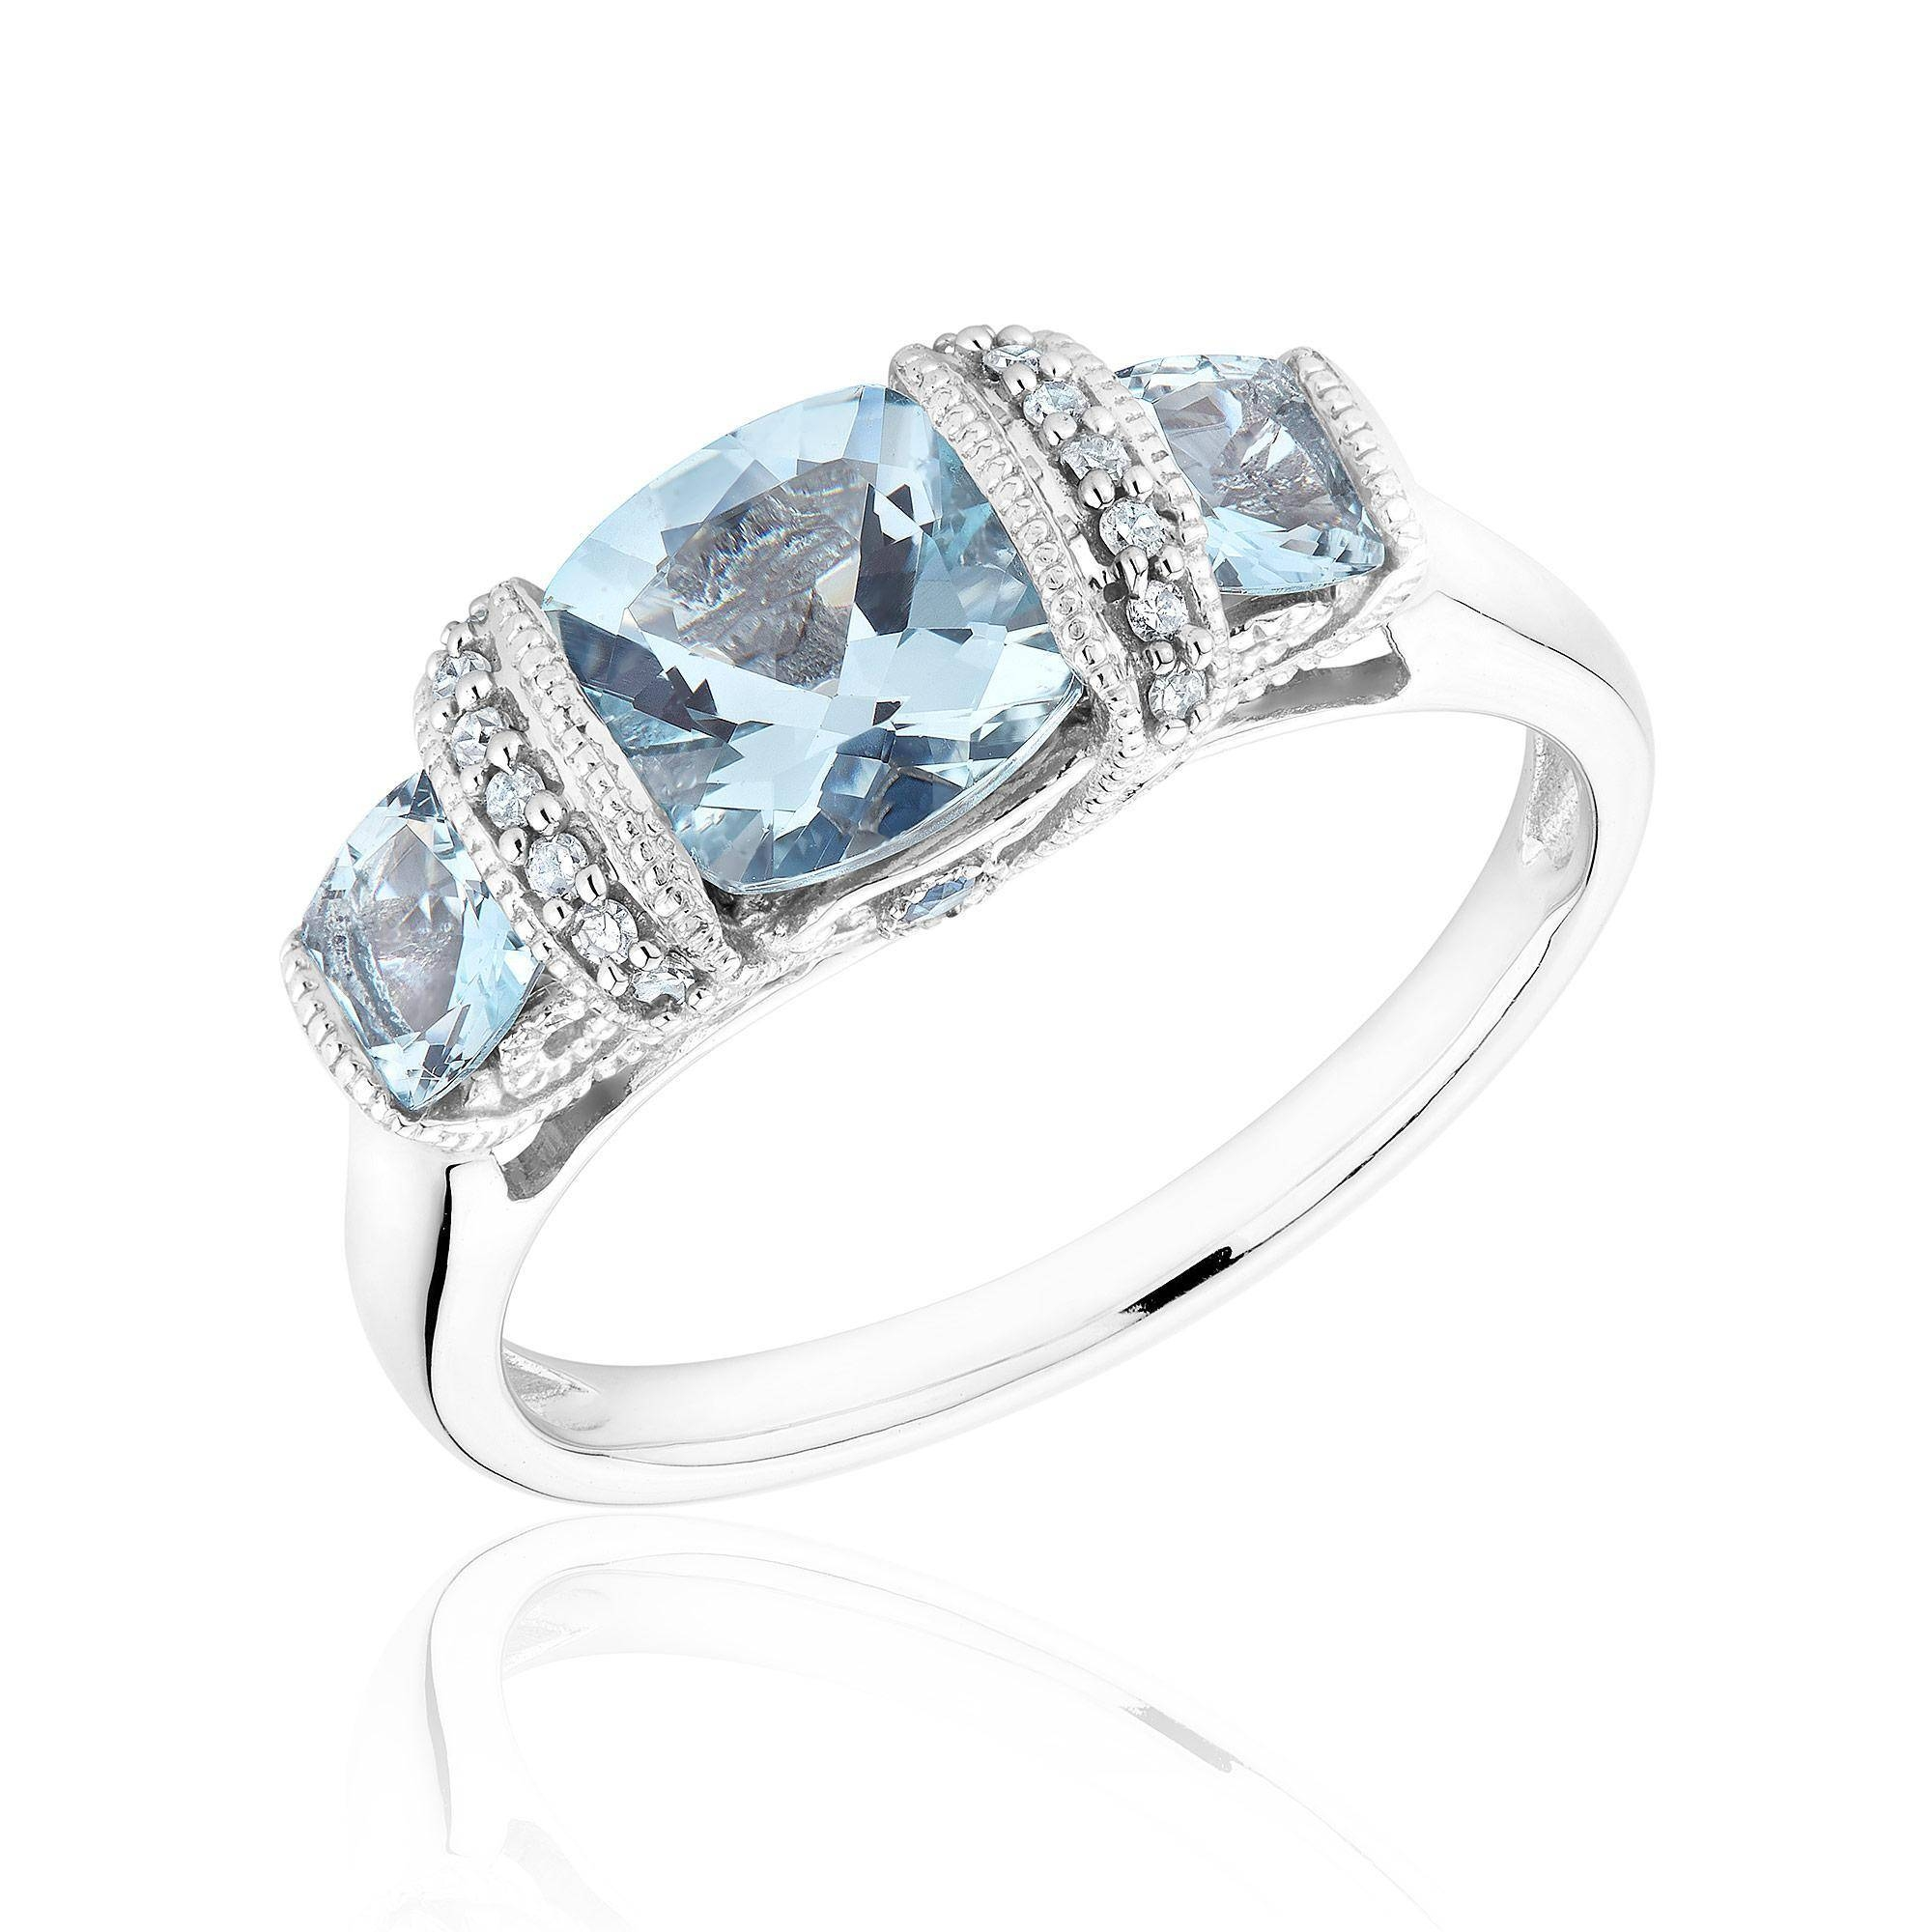 Aquamarine, Blue Sapphire And Diamond Three Stone Ring 1/20Ctw Within Diamond Aquamarine Engagement Rings (View 3 of 15)